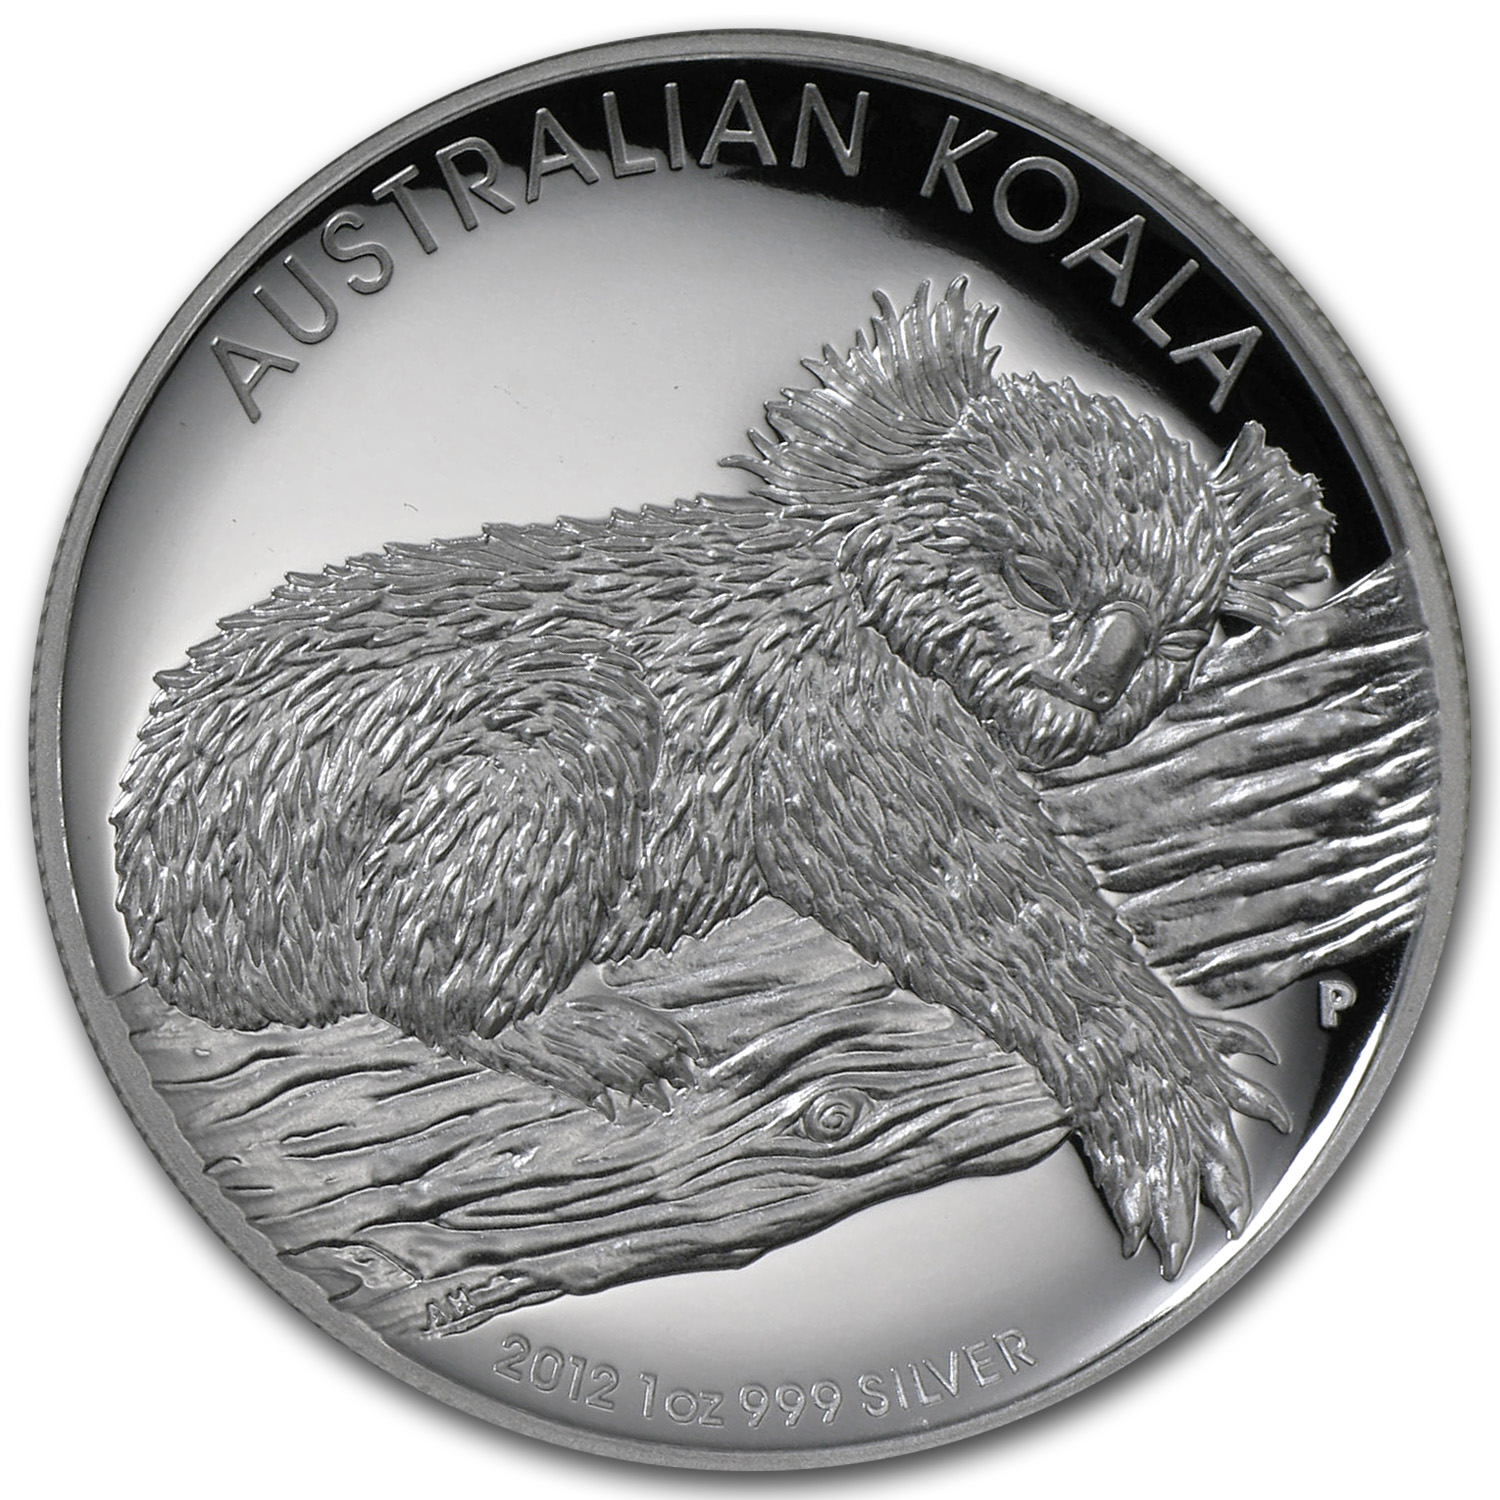 2012 1 oz Silver Australian Koala Prf (High Relief, w/Box & COA)